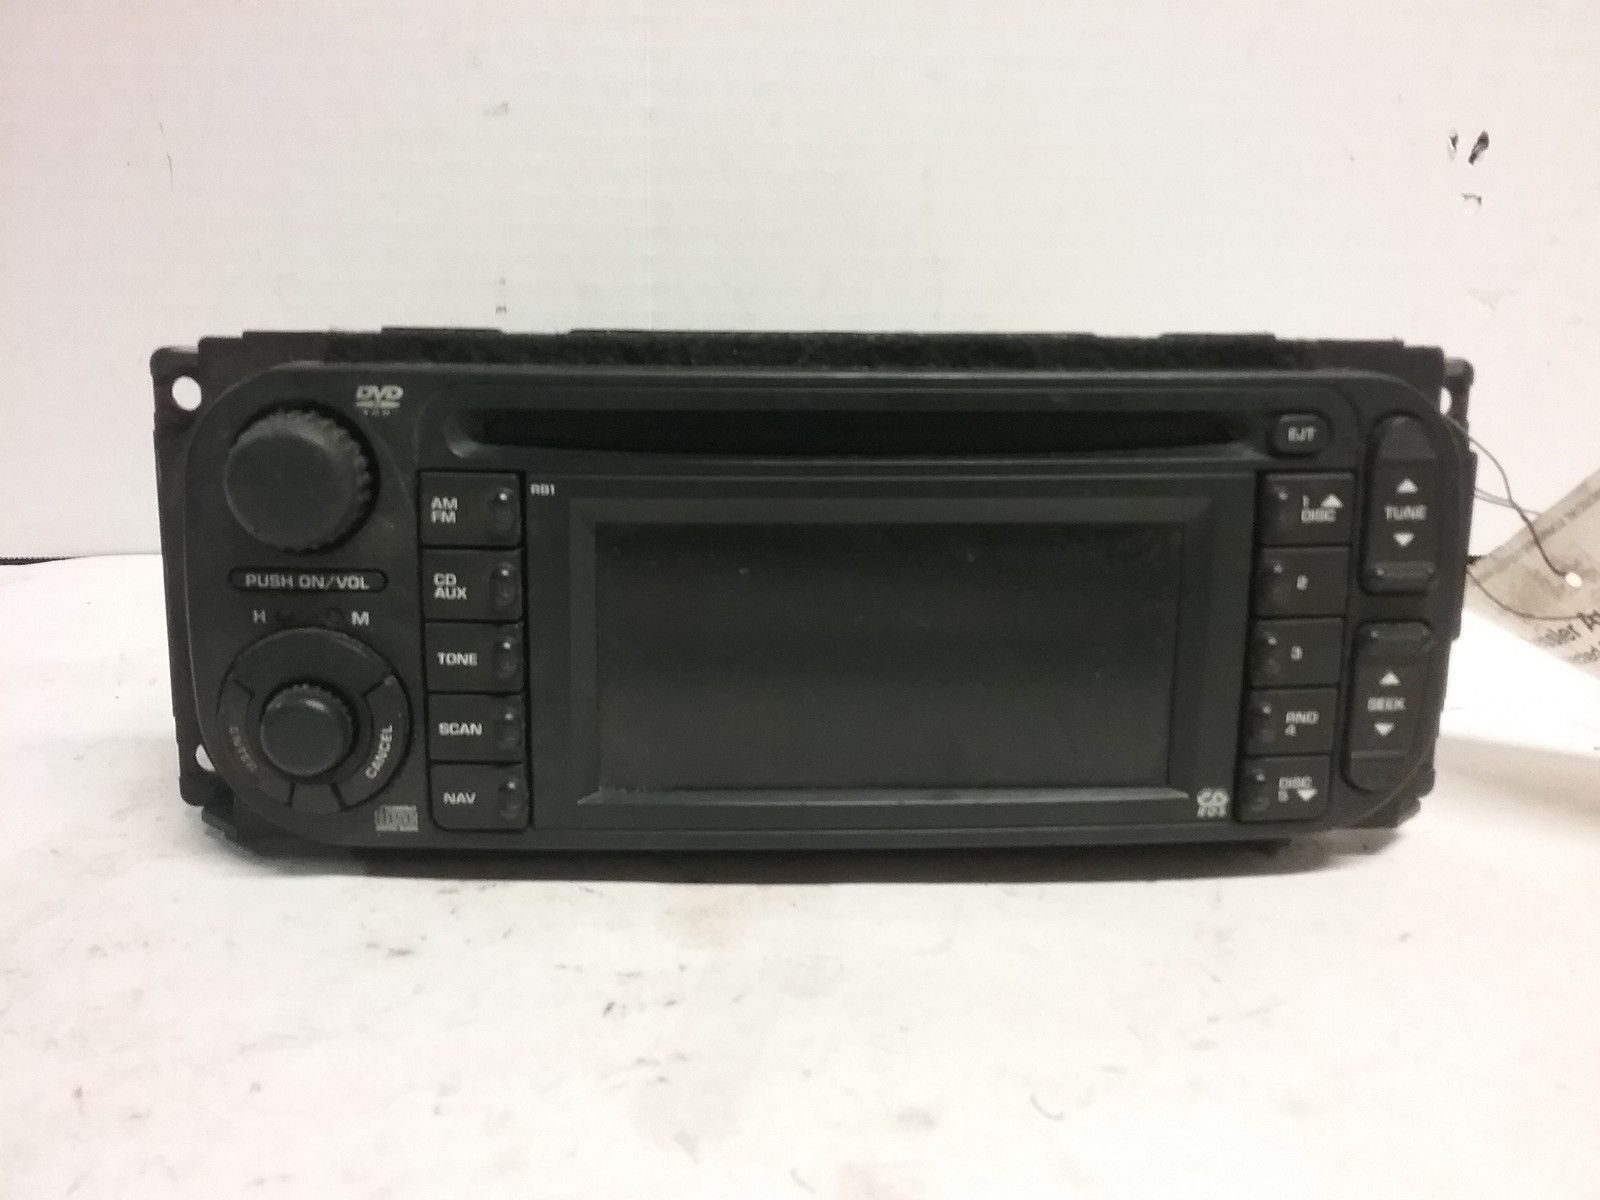 04 05 06 07 Dodge Chrysler Jeep CD navigation radio OEM P56038629AD